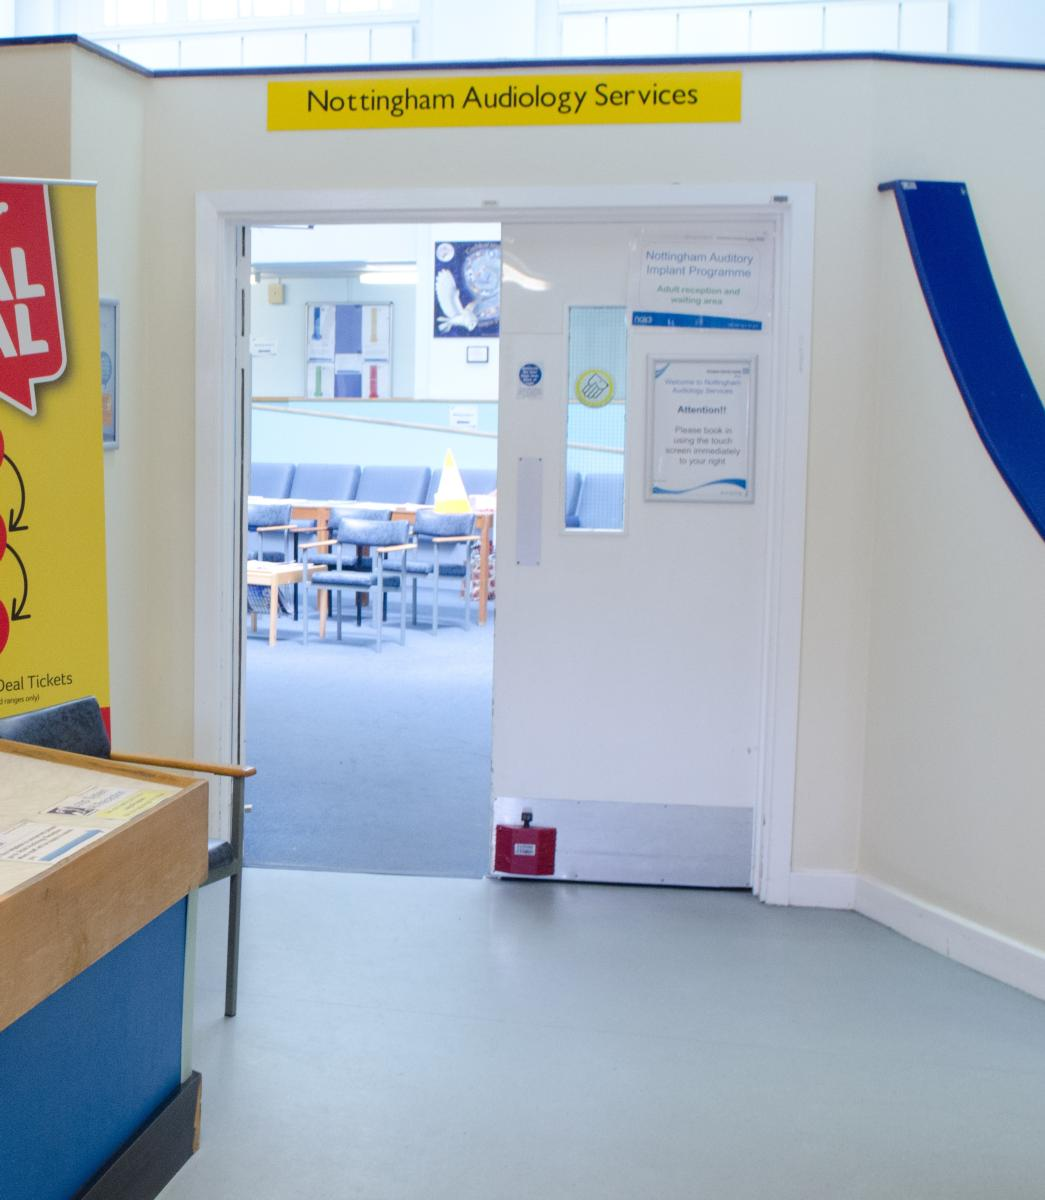 Photo of entrance to Nottingham Audiology Services